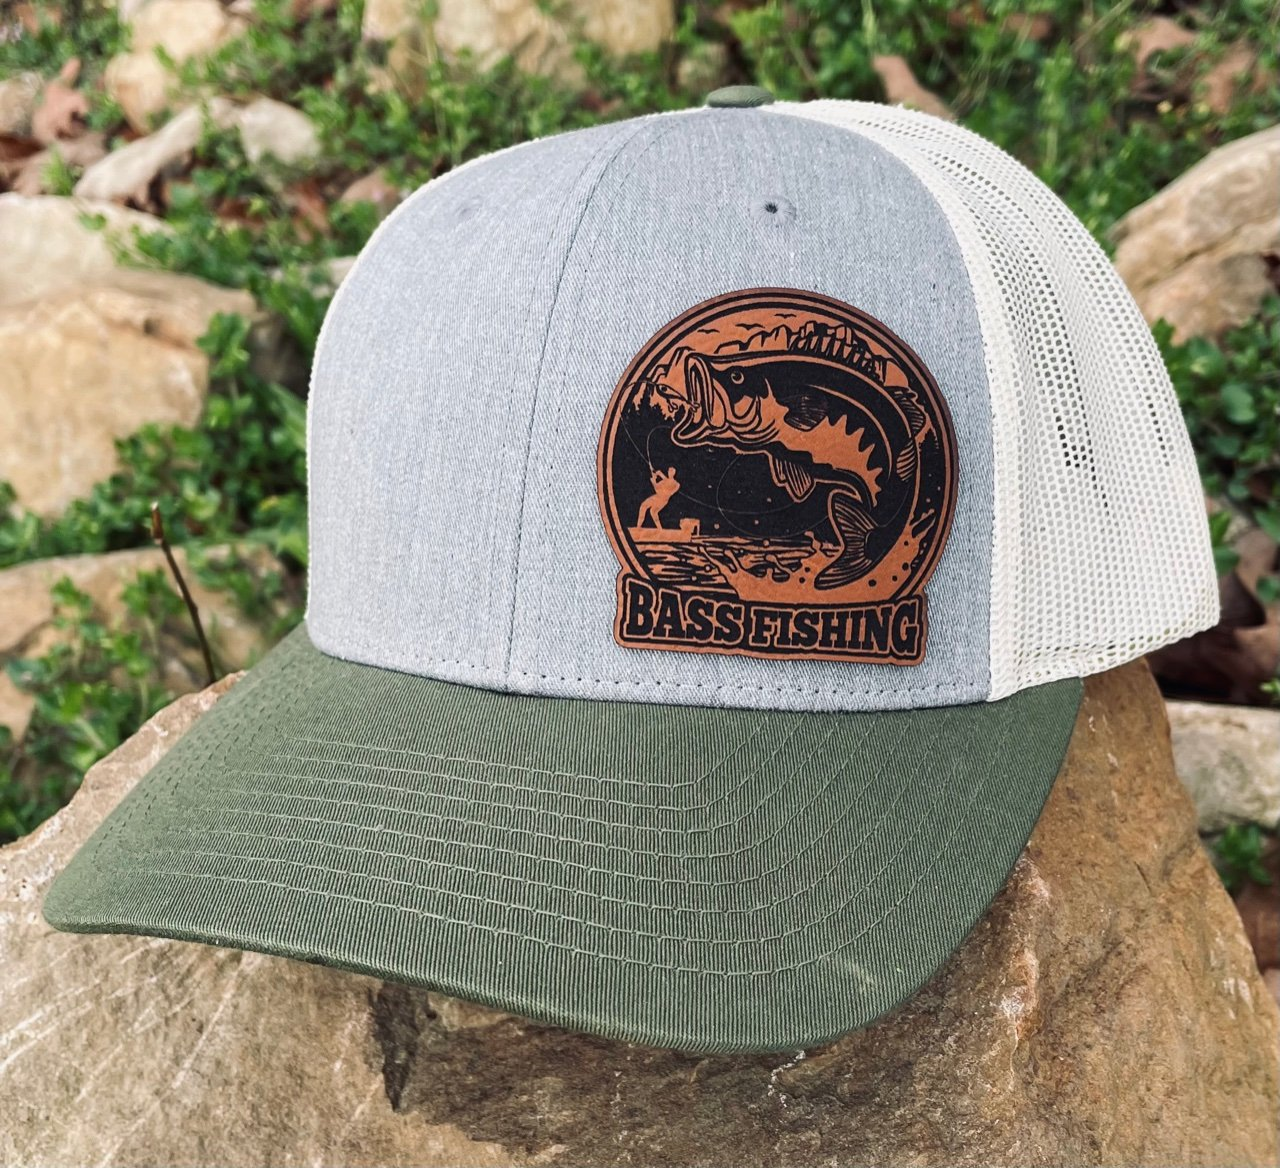 LHP0023 Bass Fishing Leather Engraved Hat Patch 2.5x2.5